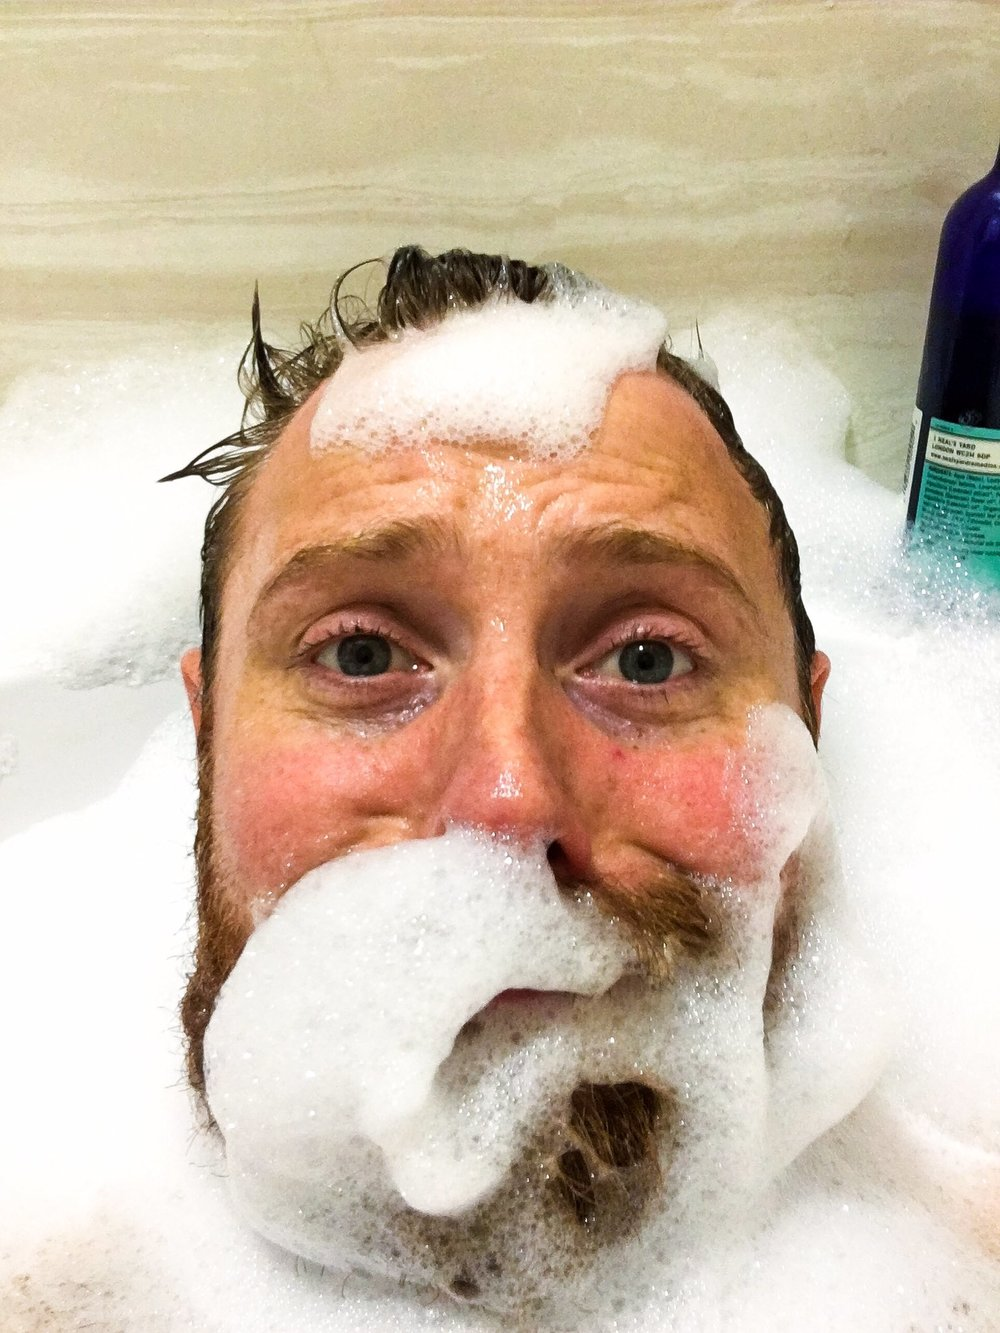 Peart takes a bath, in the name of research